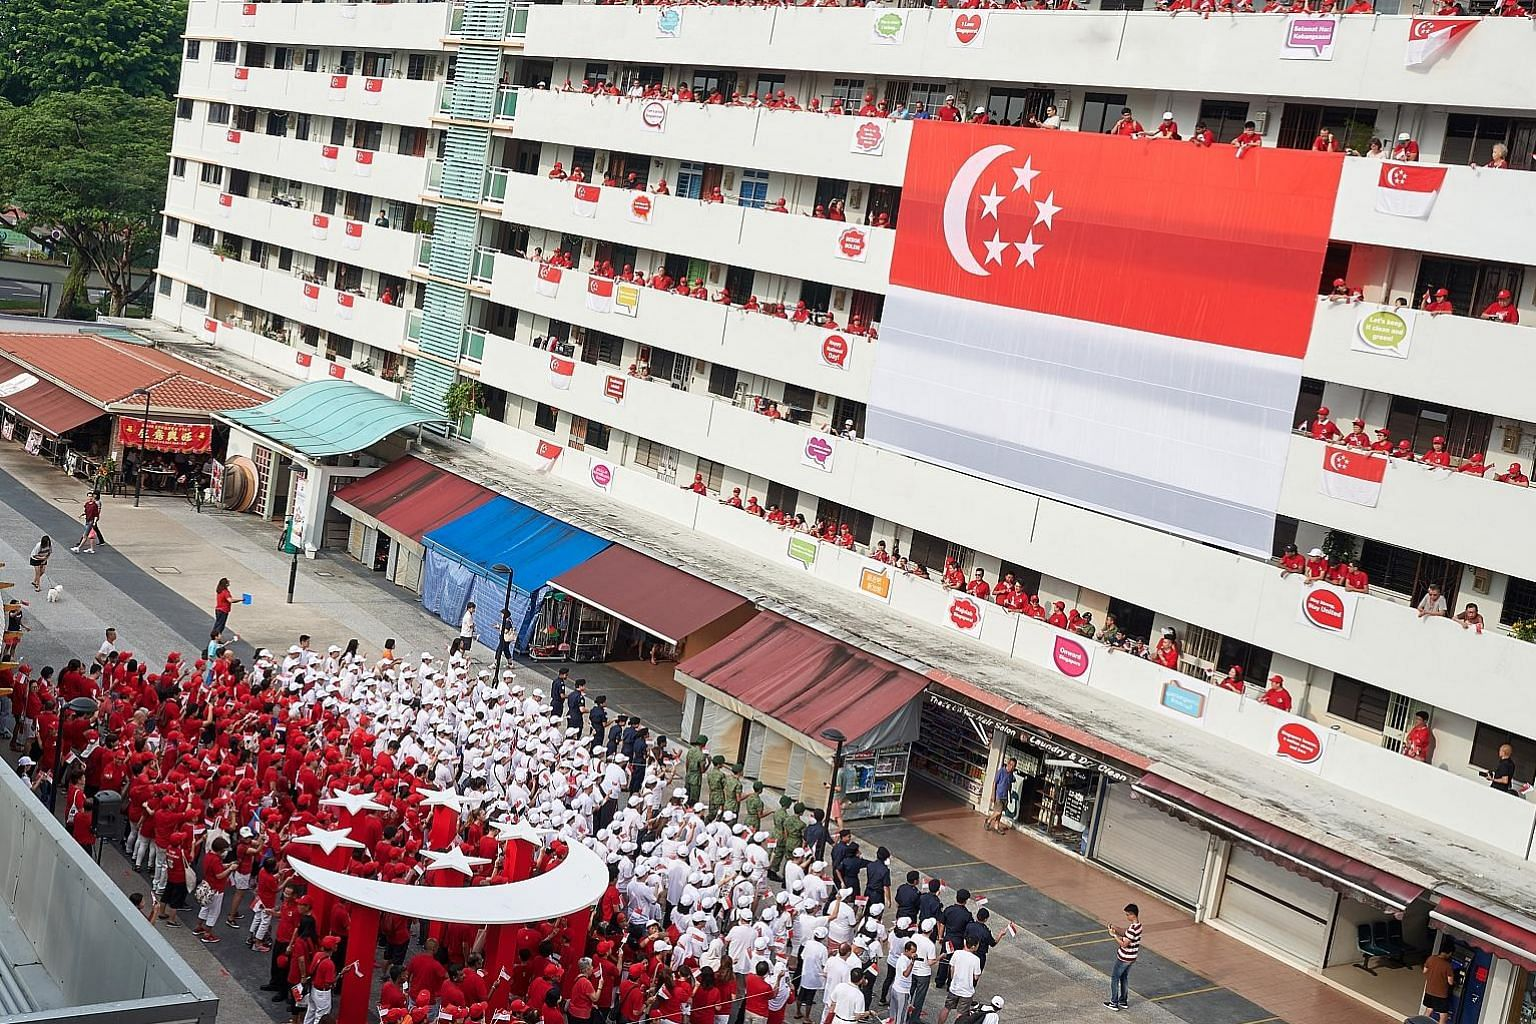 Bedok residents dressed in red and white form a human flag between Blocks 16 and 18 on Bedok South Road, mirroring a giant 12m-by-8m Singapore flag hung on the facade of Block 18. The block was also decorated with slogans such as Majulah Singapura as